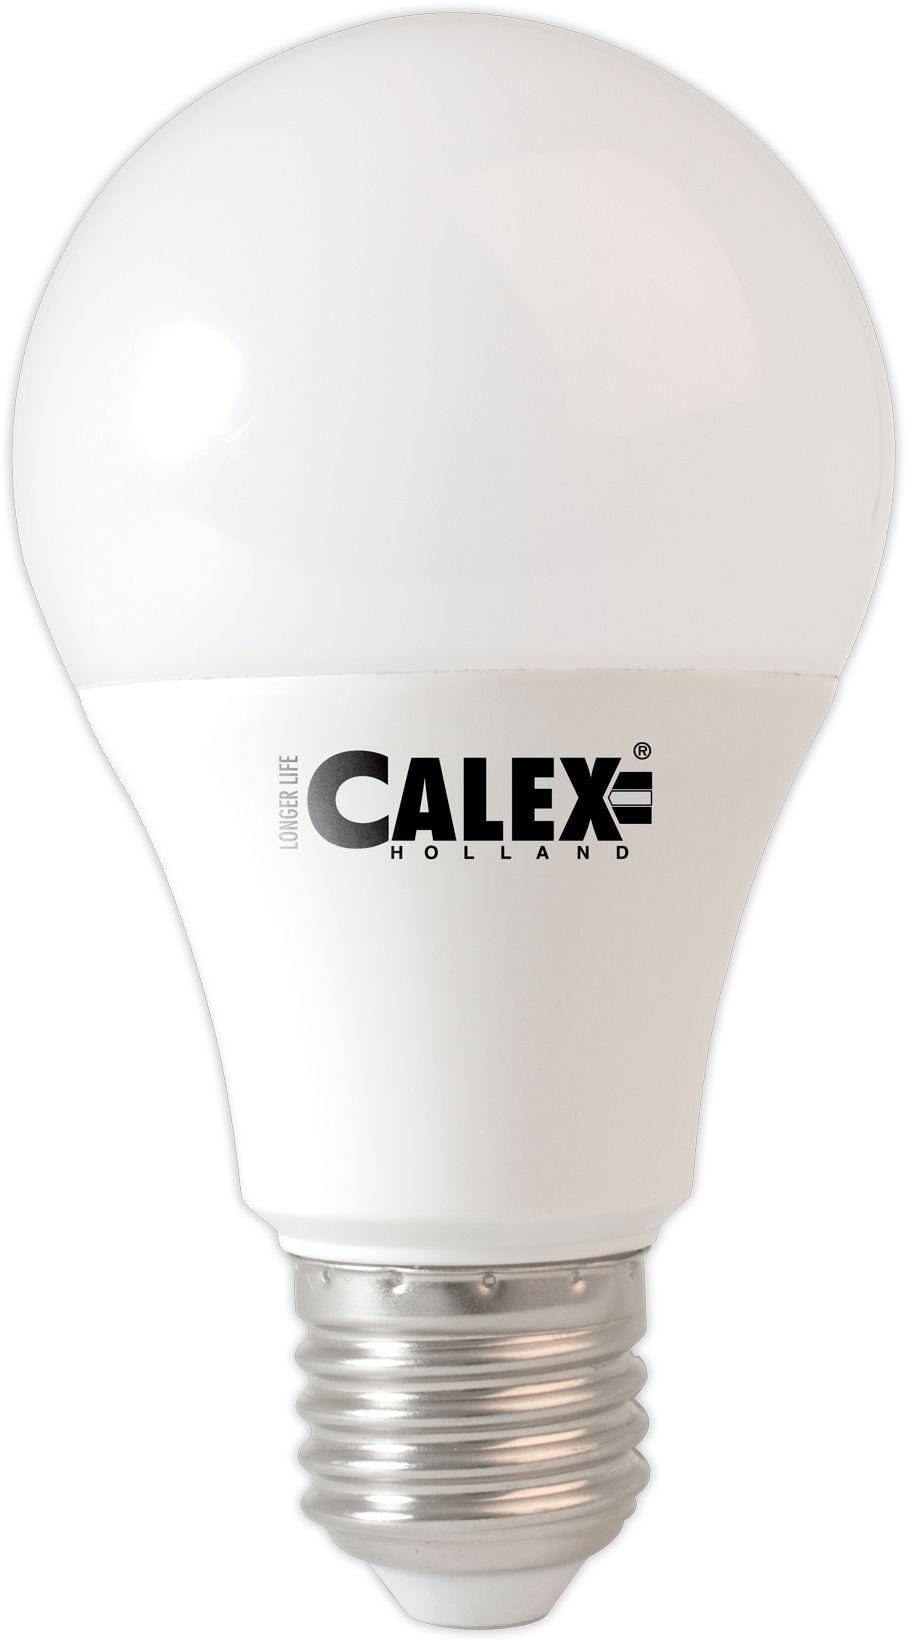 Image of Calex 8W Power LED Opal GLS E27 500 Lumen Dimmable Bulb